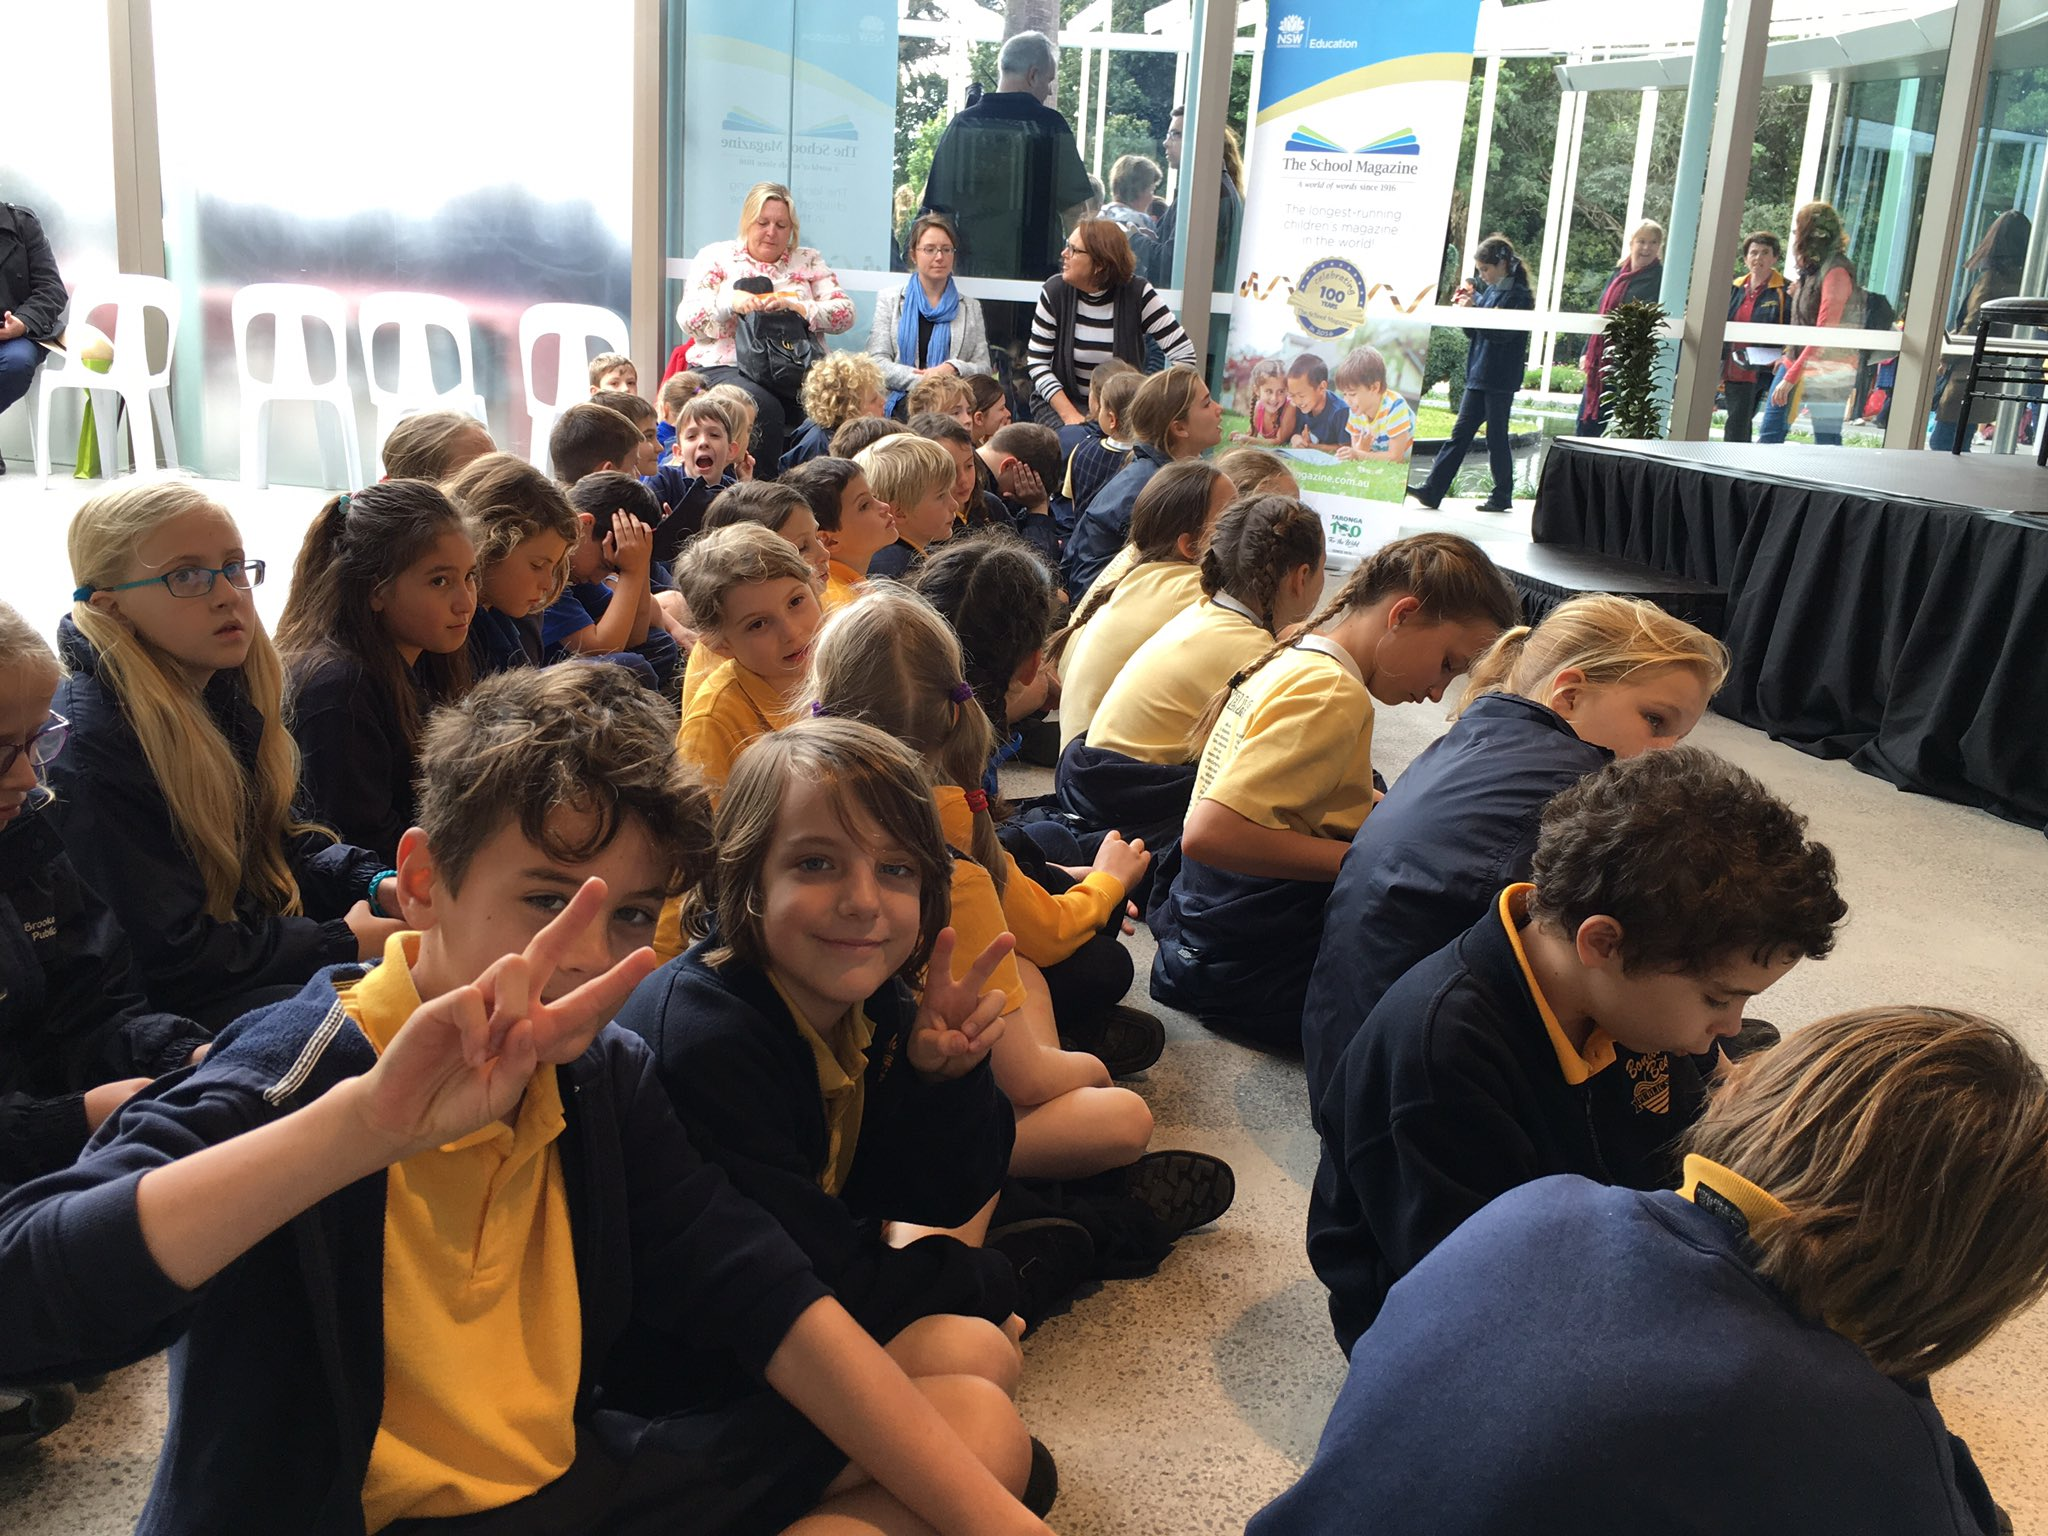 Students from @BondiBeachPS excited to be at the celebration of 100 years of @theschoolmag #EDWEEKNSW #NSWeducation https://t.co/ZCRkSX5osY